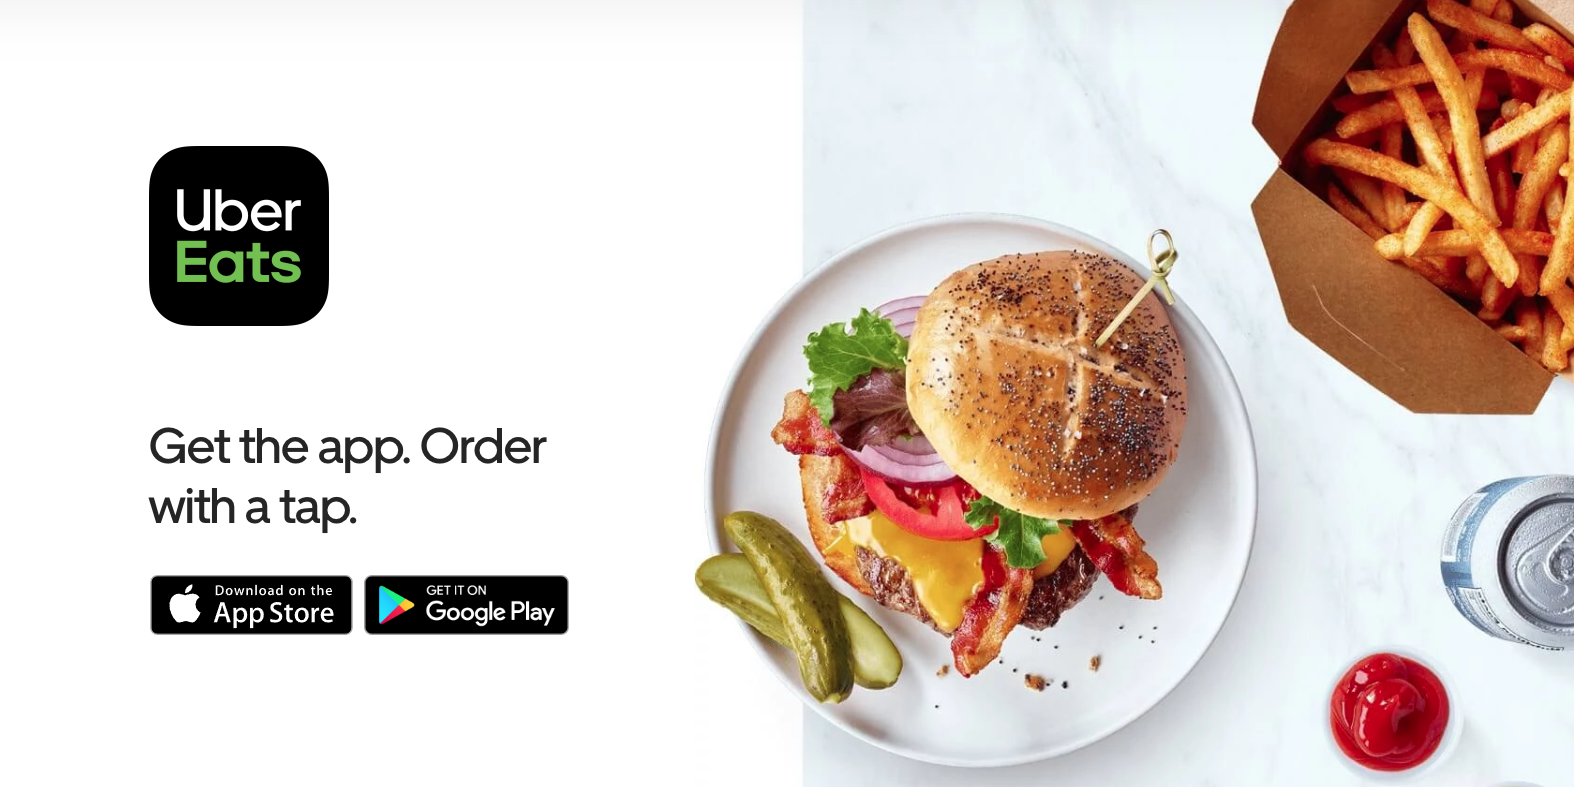 Get 13% off your next Uber Eats order with this promo code - 9to5Toys